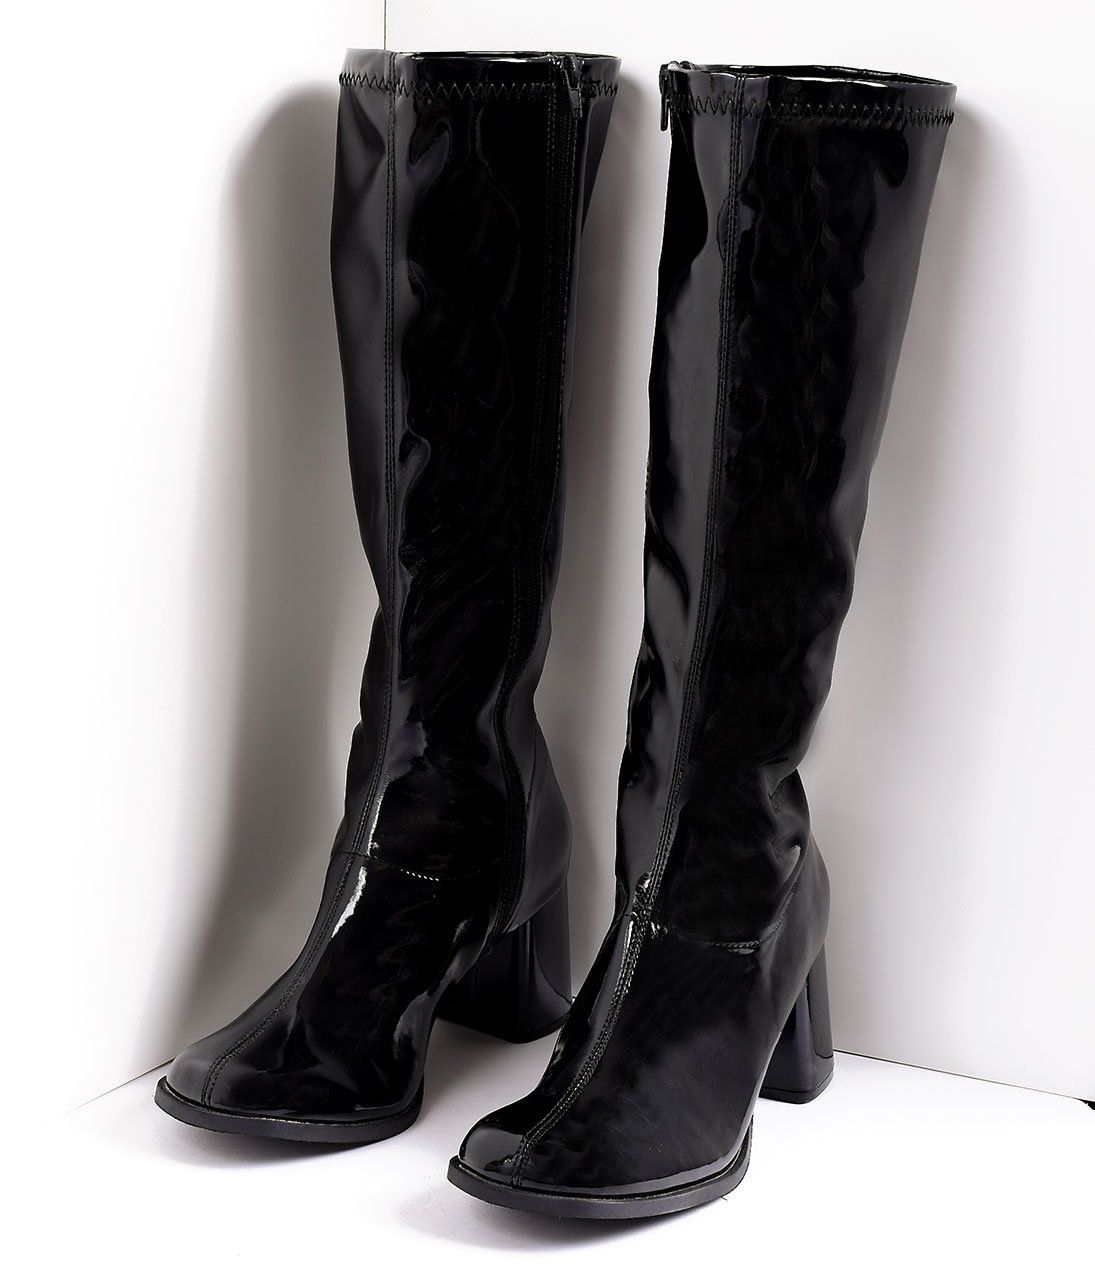 2724cba2a Black Patent Knee High Go Go Boots in 2019   Fashion Inspo   Boots ...